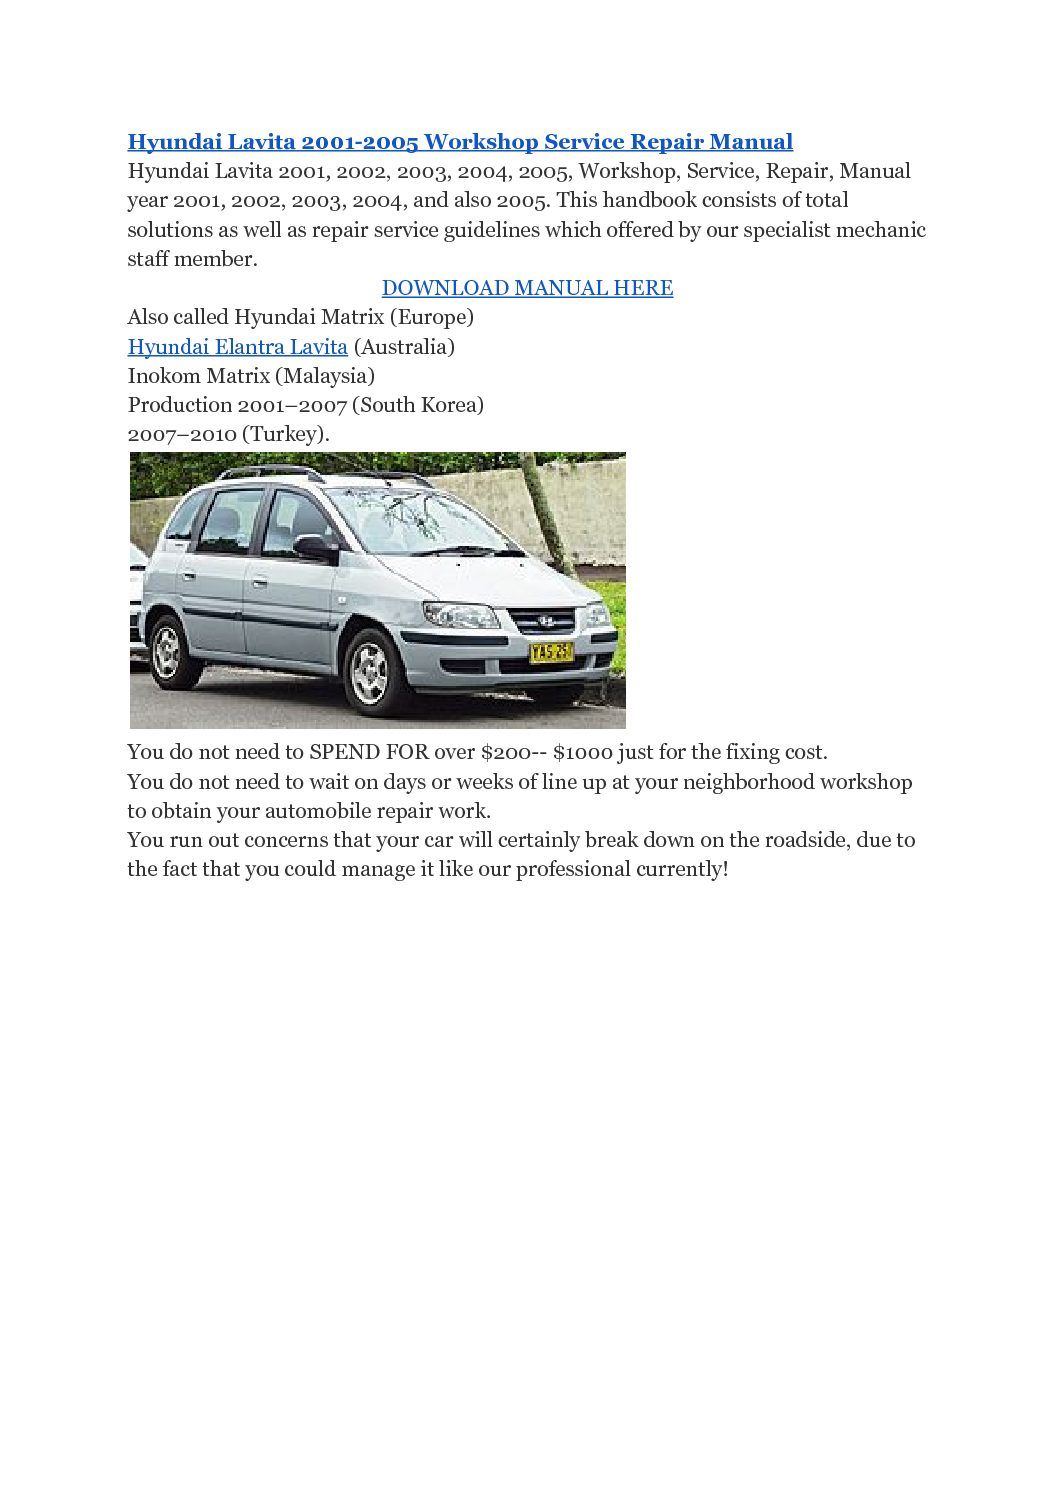 Customer, Hyundai Lavita 2001-2005 Workshop Service Repair Manual ,  http://www.carsmechanicpdf.com/hyundai-lavita-2001-2005-workshop-service- repair-manual/